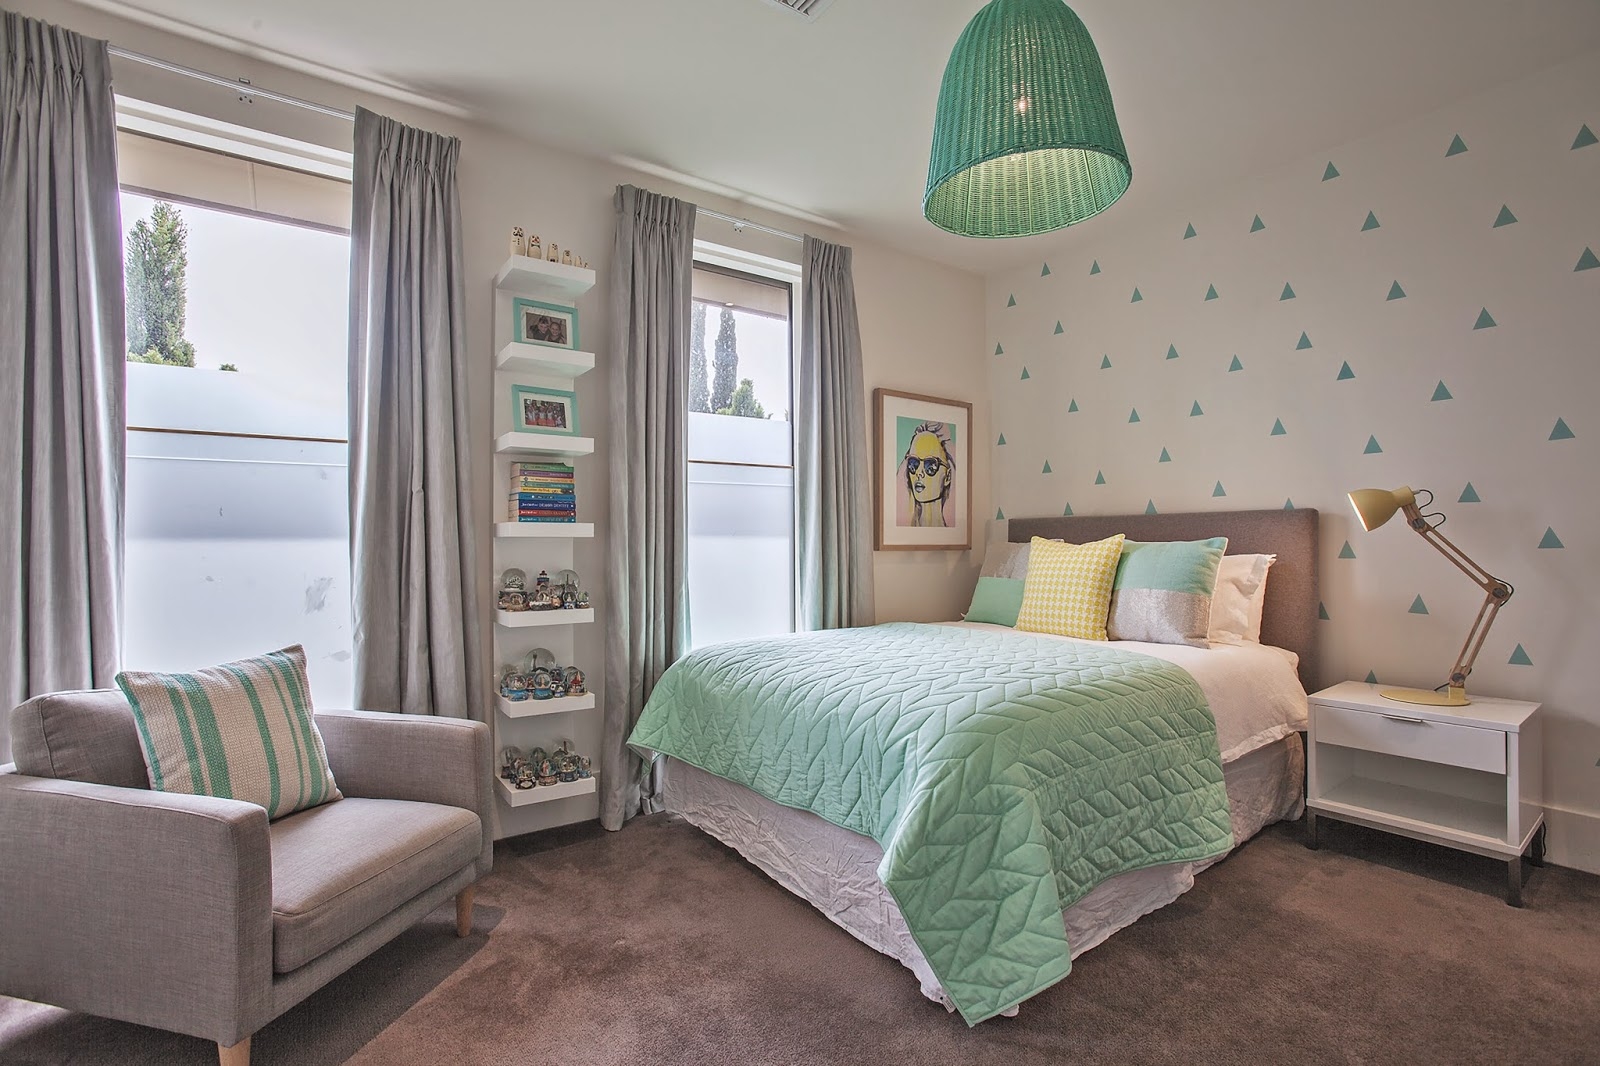 14 Year Old Room Ideas Little Liberty Fresh Mint